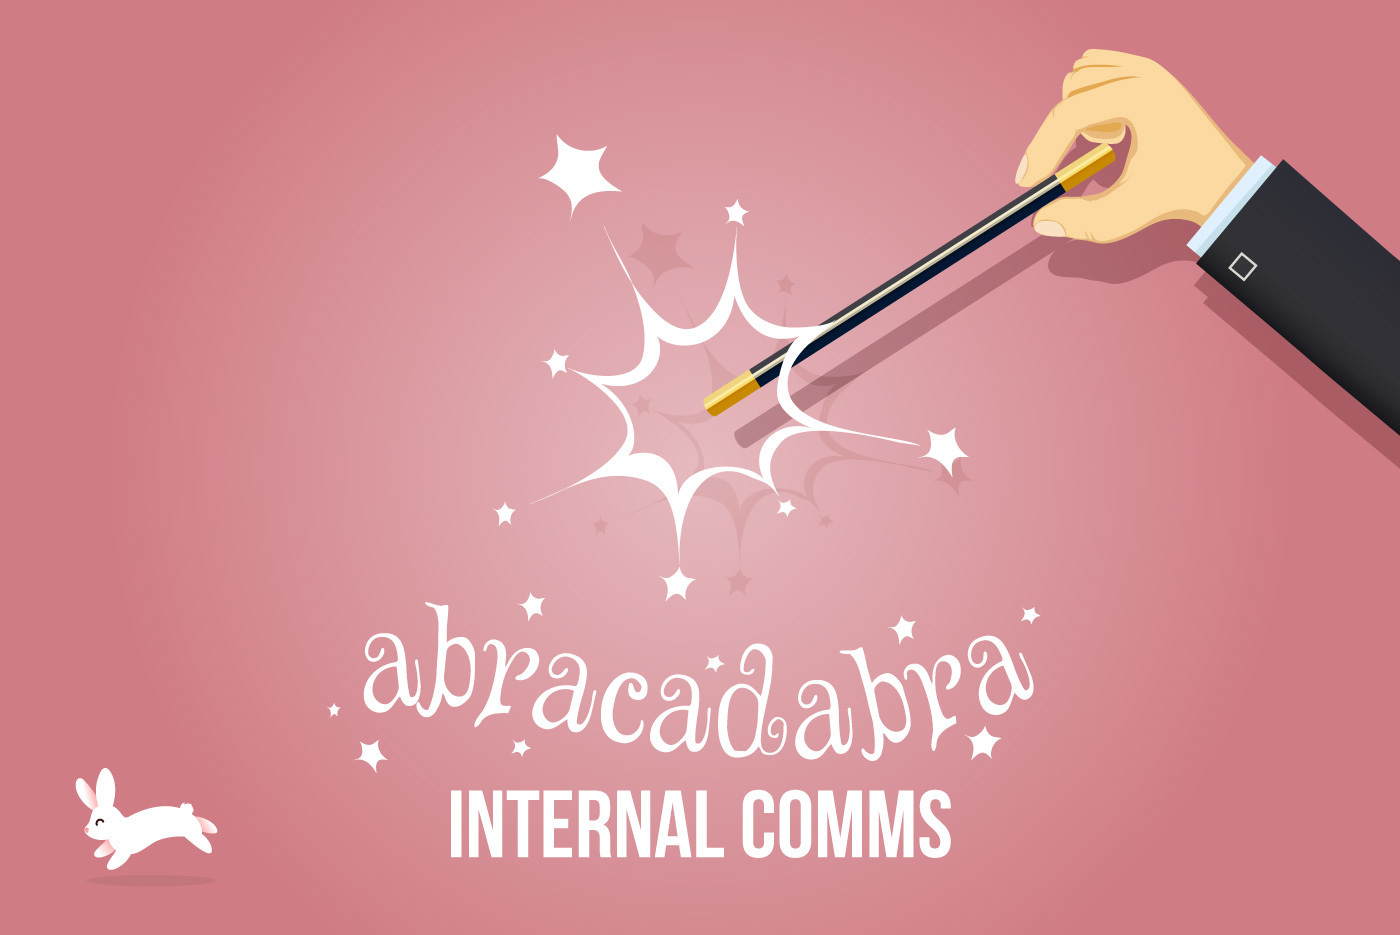 A magician with a magic comms wand accompanied by the text 'Adbracadabra internal comms', implying that internal comms teams all come equipped with a magic wand